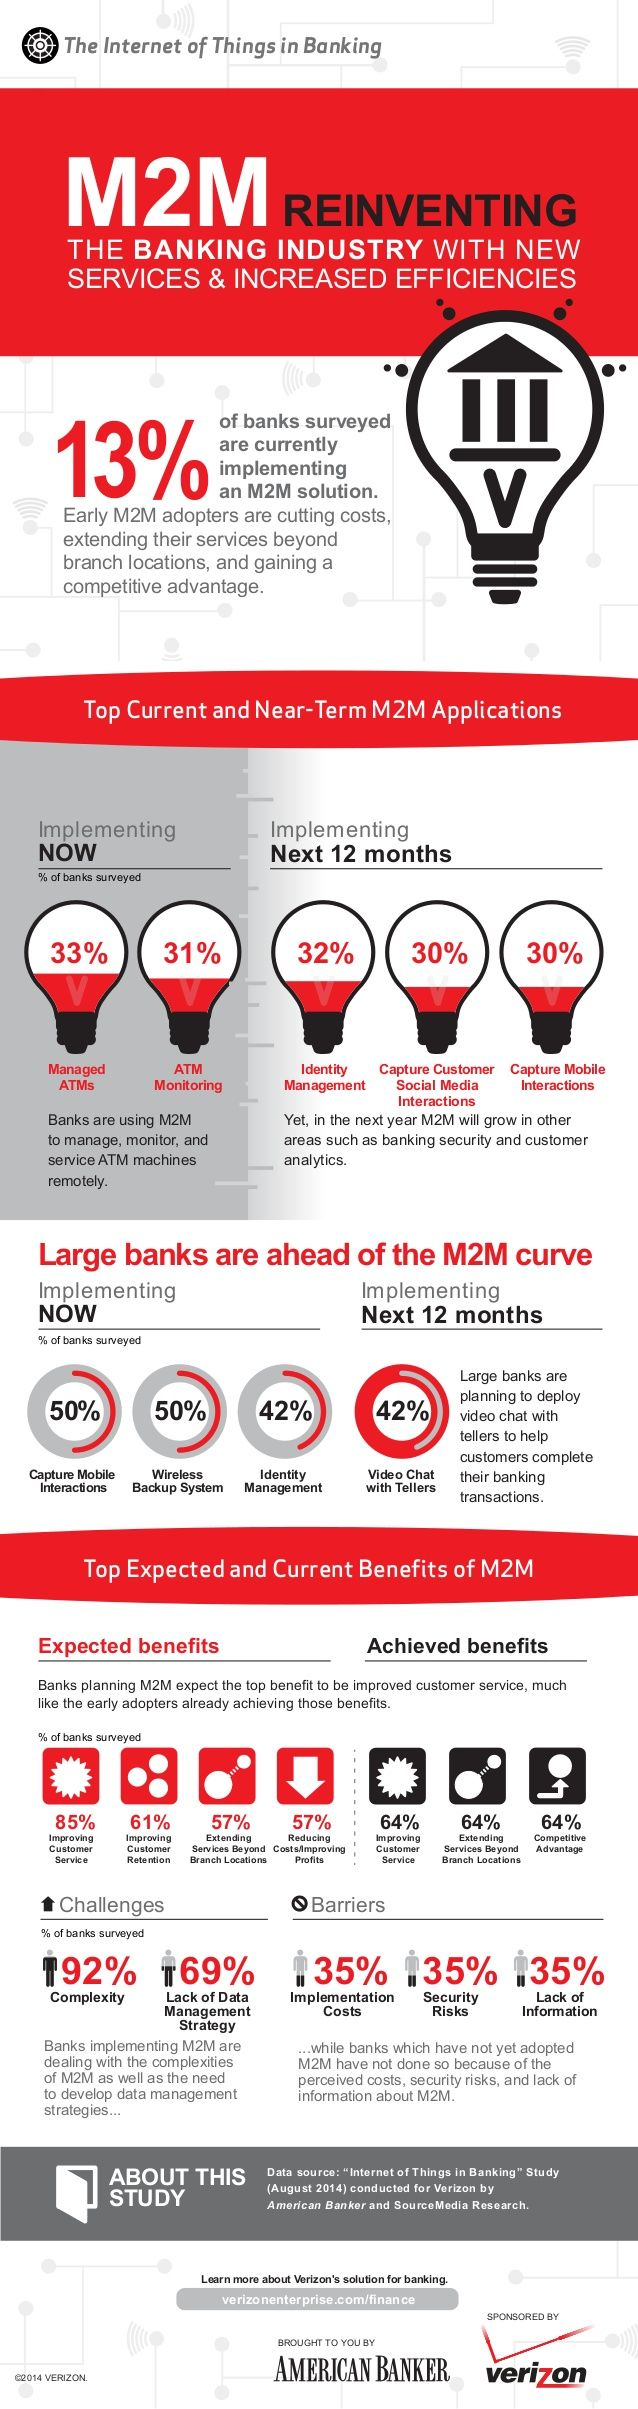 #Infographic: #M2M Reinventing the #Banking Industry